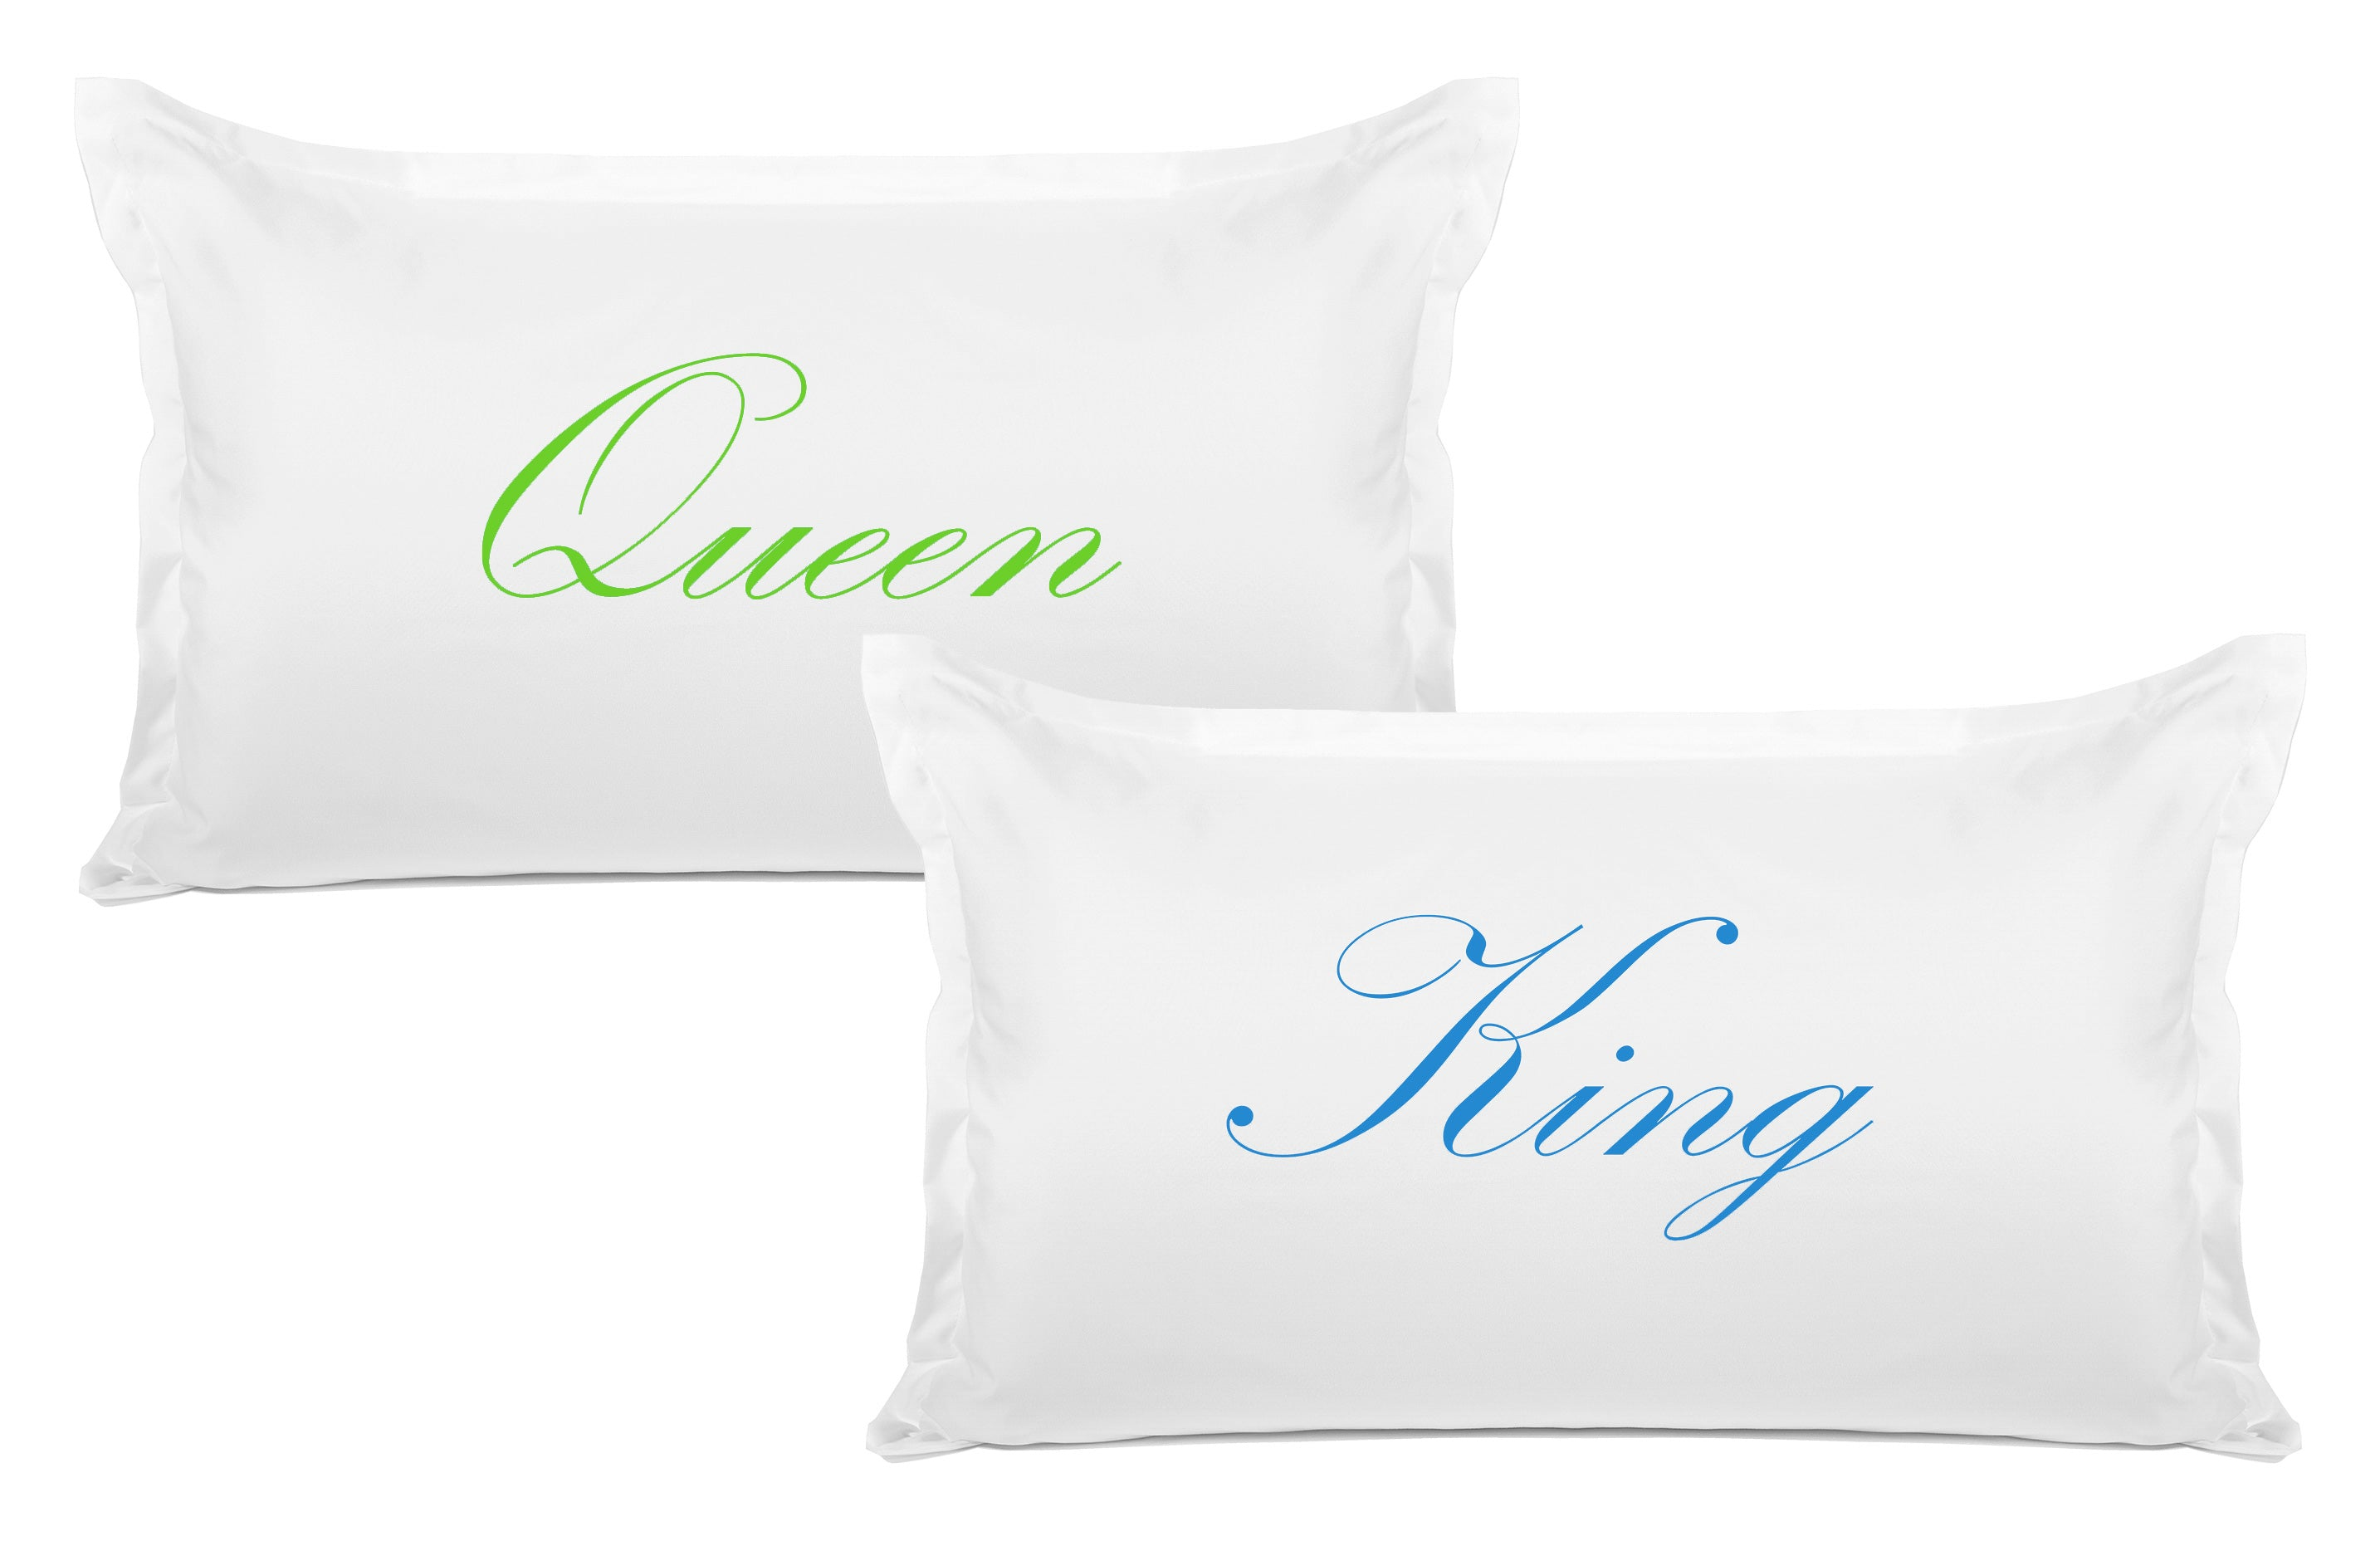 King, Queen - His & Hers Pillowcase Collection